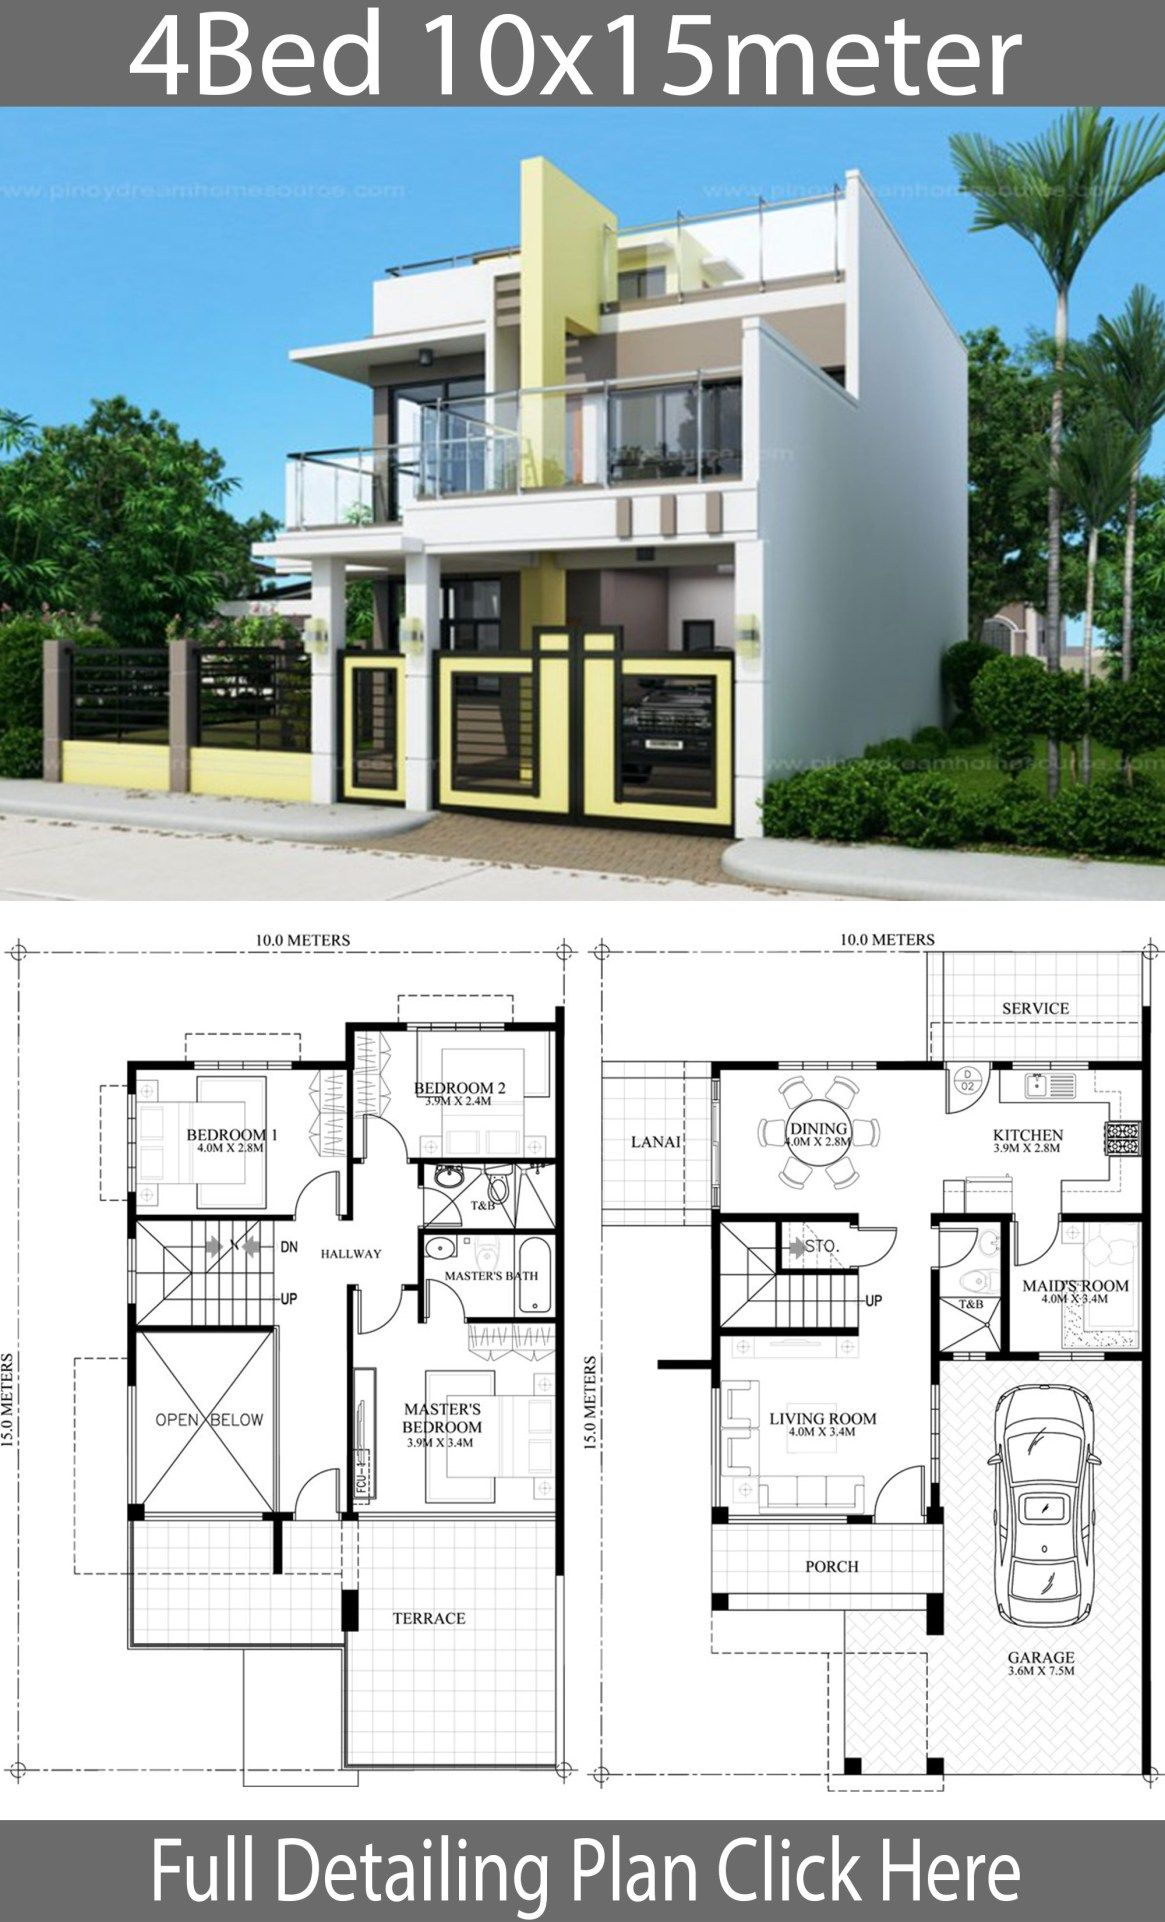 Home Design Plan 10x15m With 4 Bedrooms Home Design With Plansearch Home Design Plan Modern House Plans Model House Plan